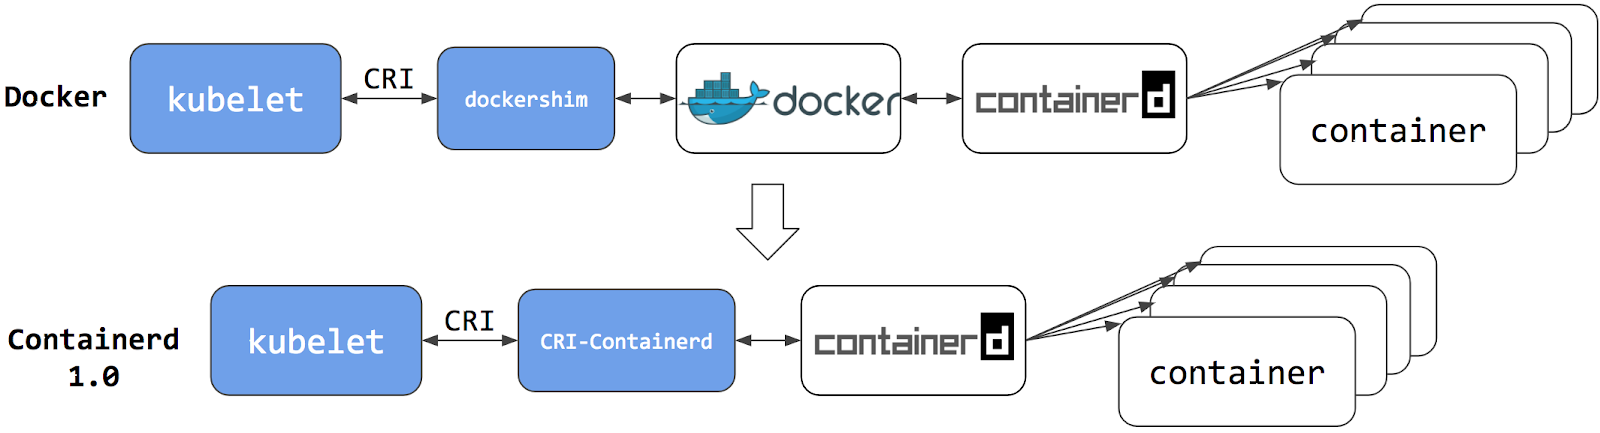 cri-containerd architecture